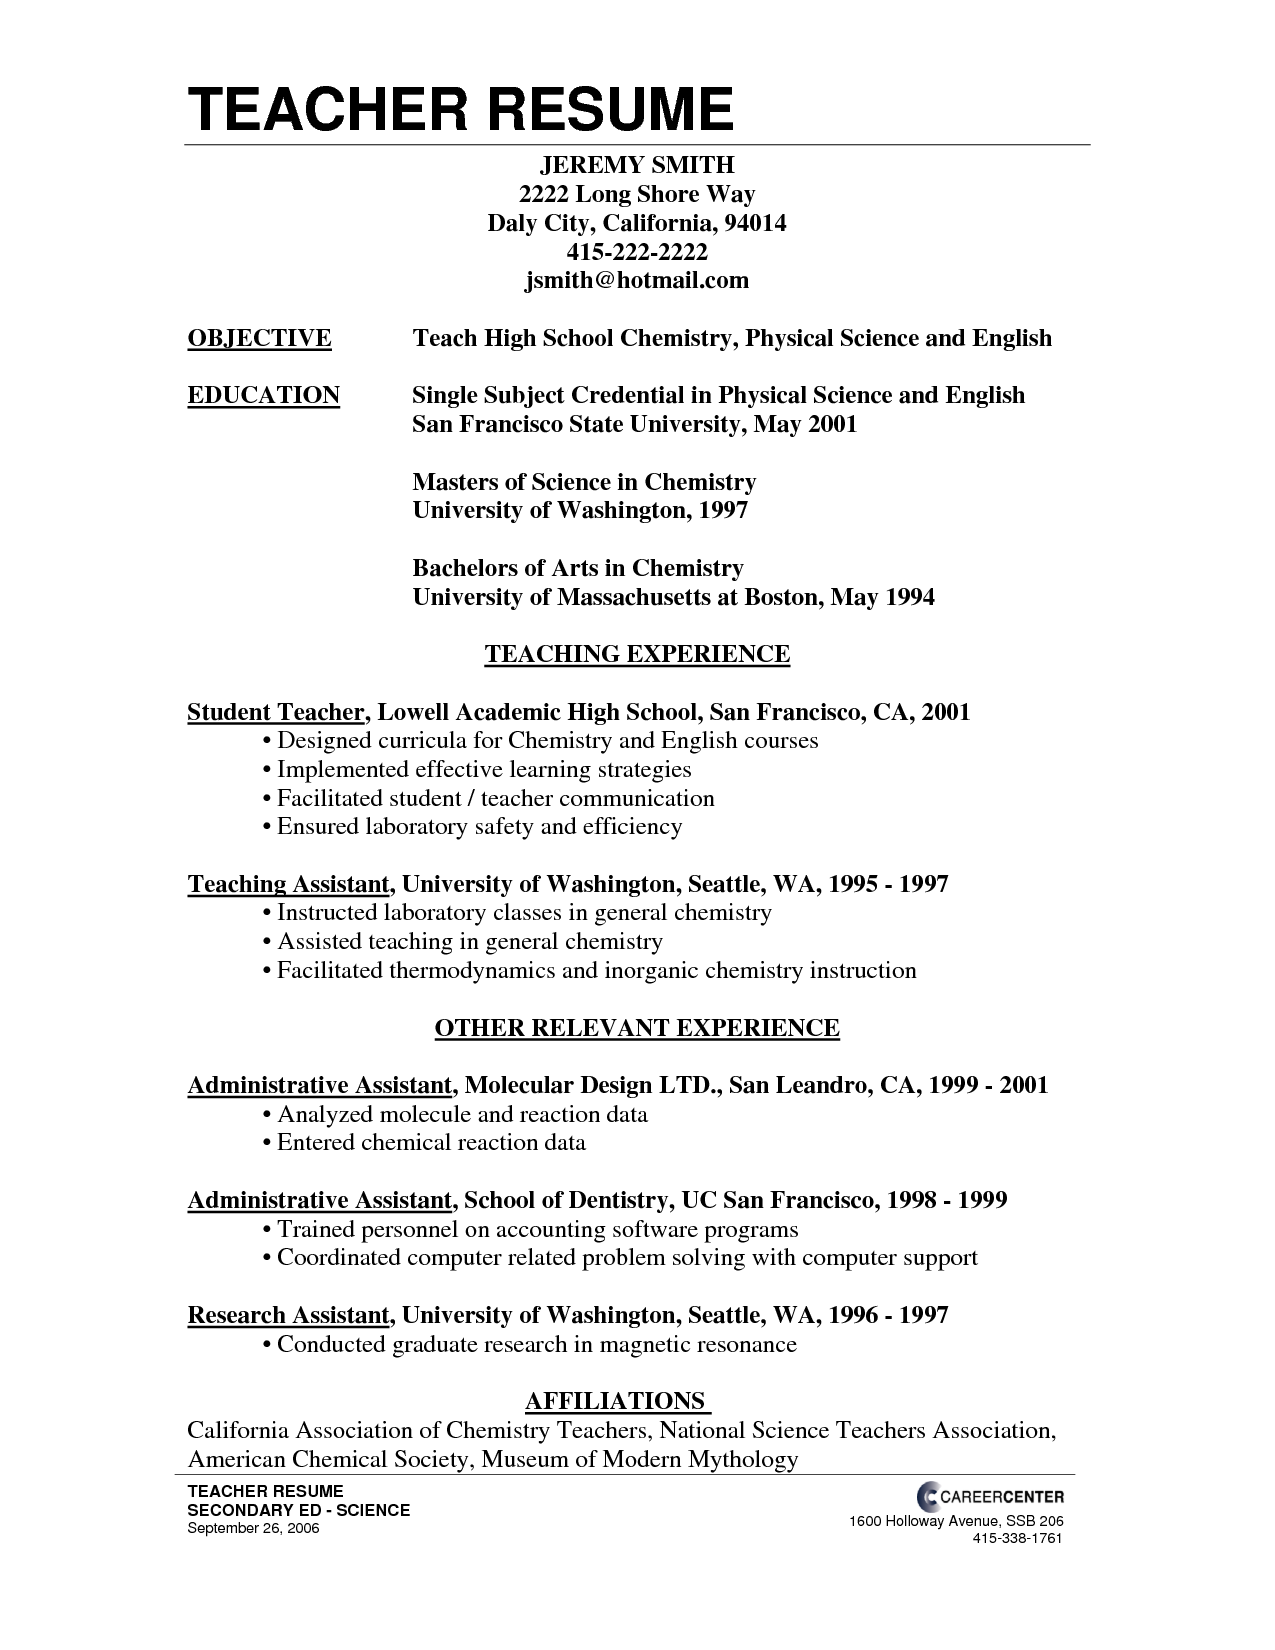 teachers cv httpwwwteachers resumescomau - Resumes Examples For Teachers